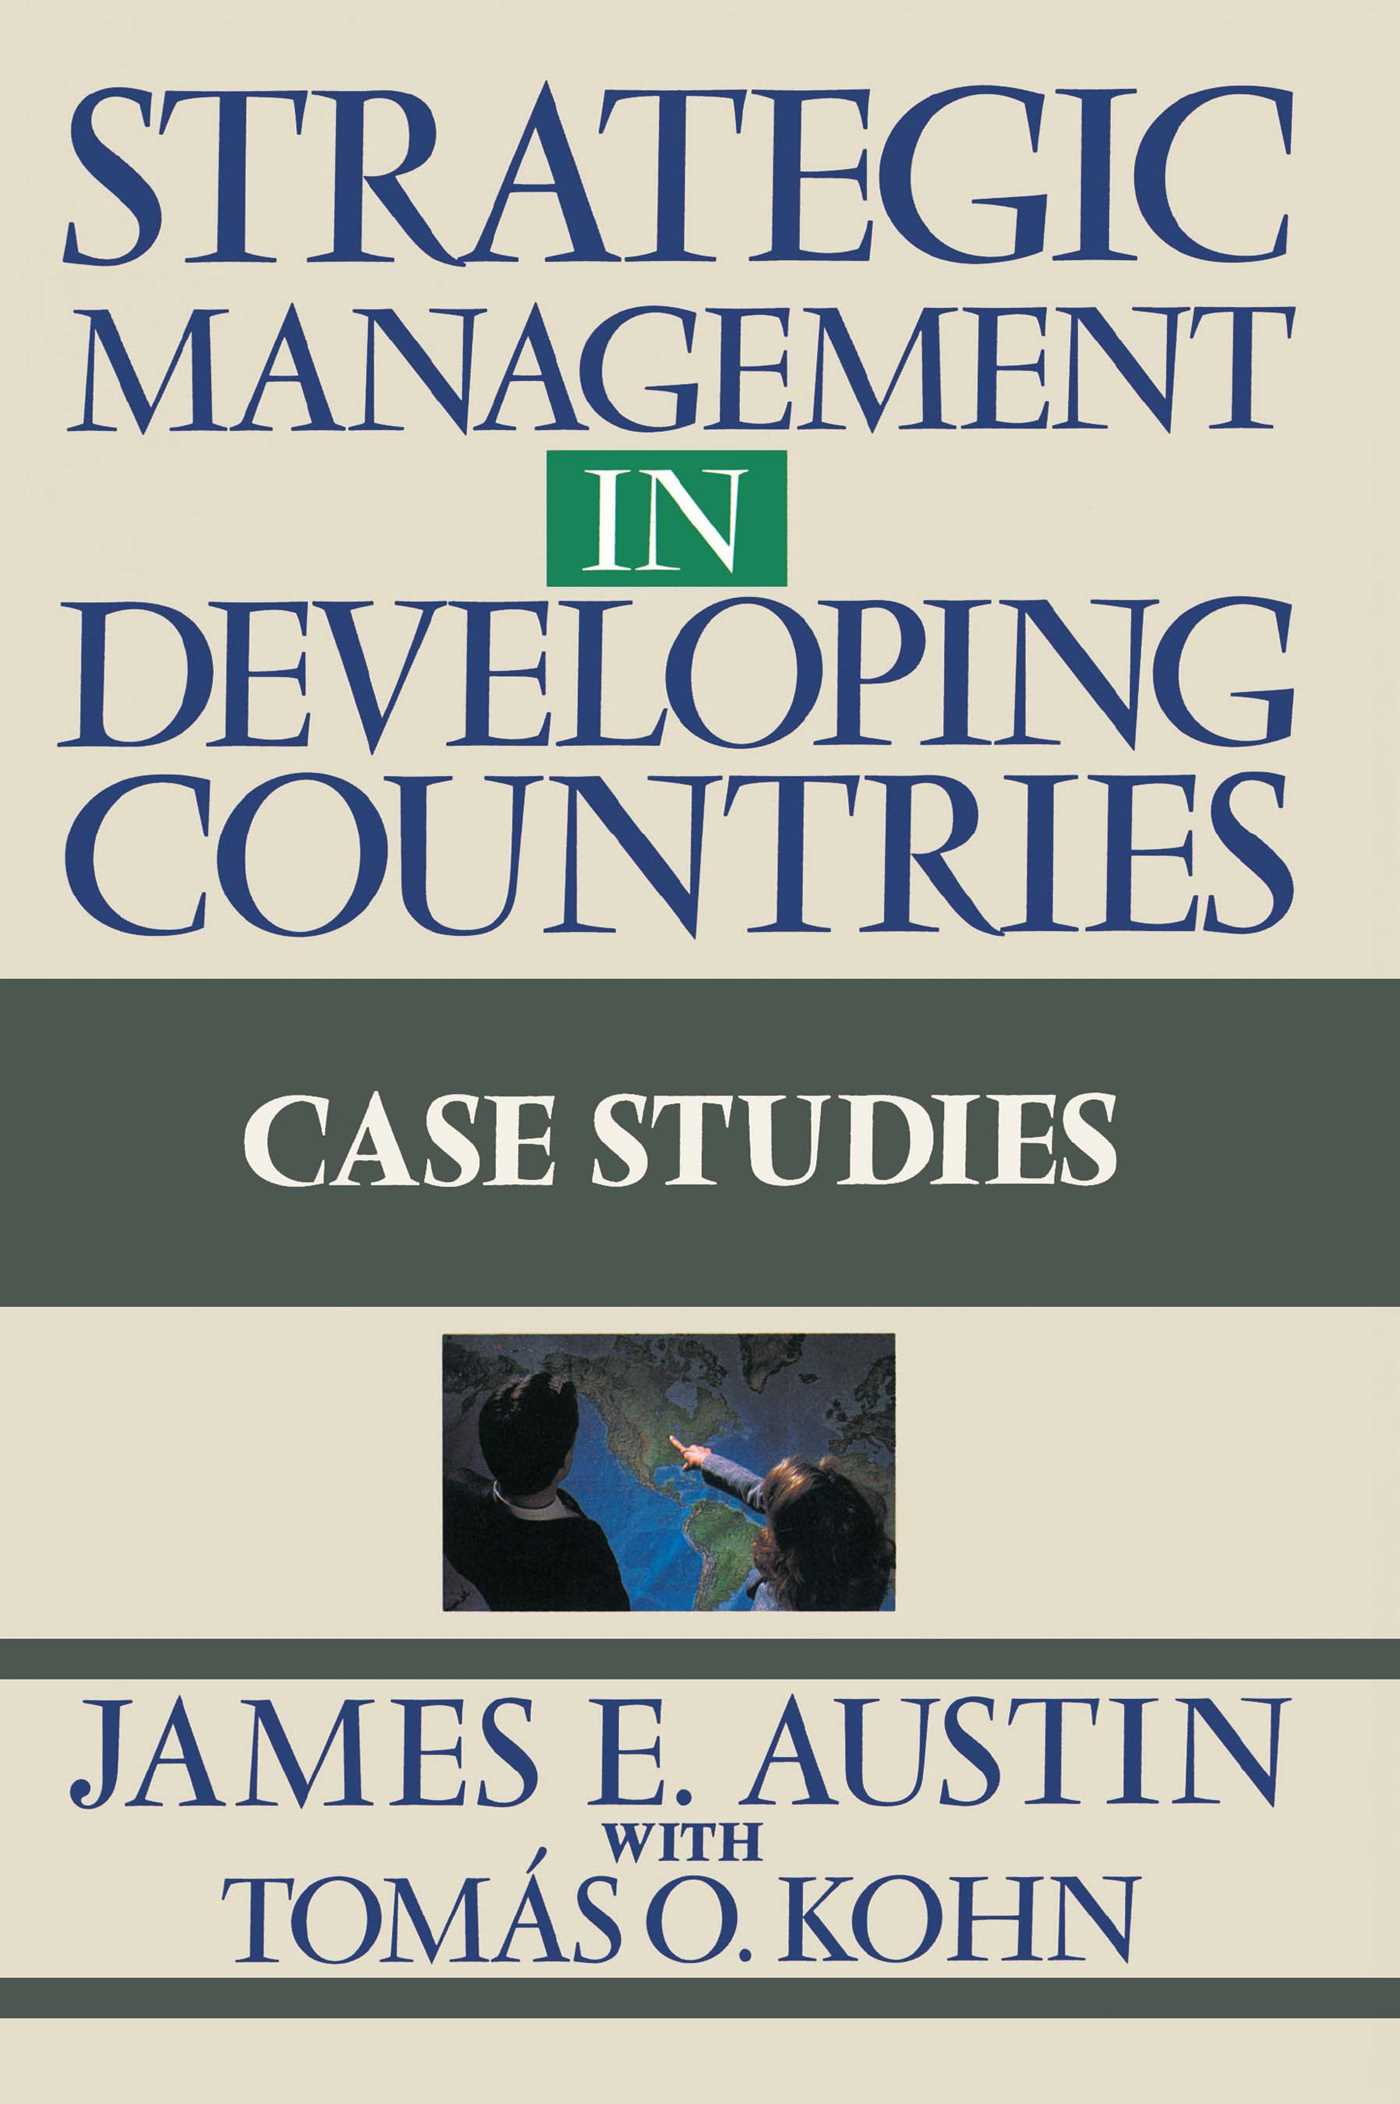 Strategic management in developing countries 9781439119839 hr